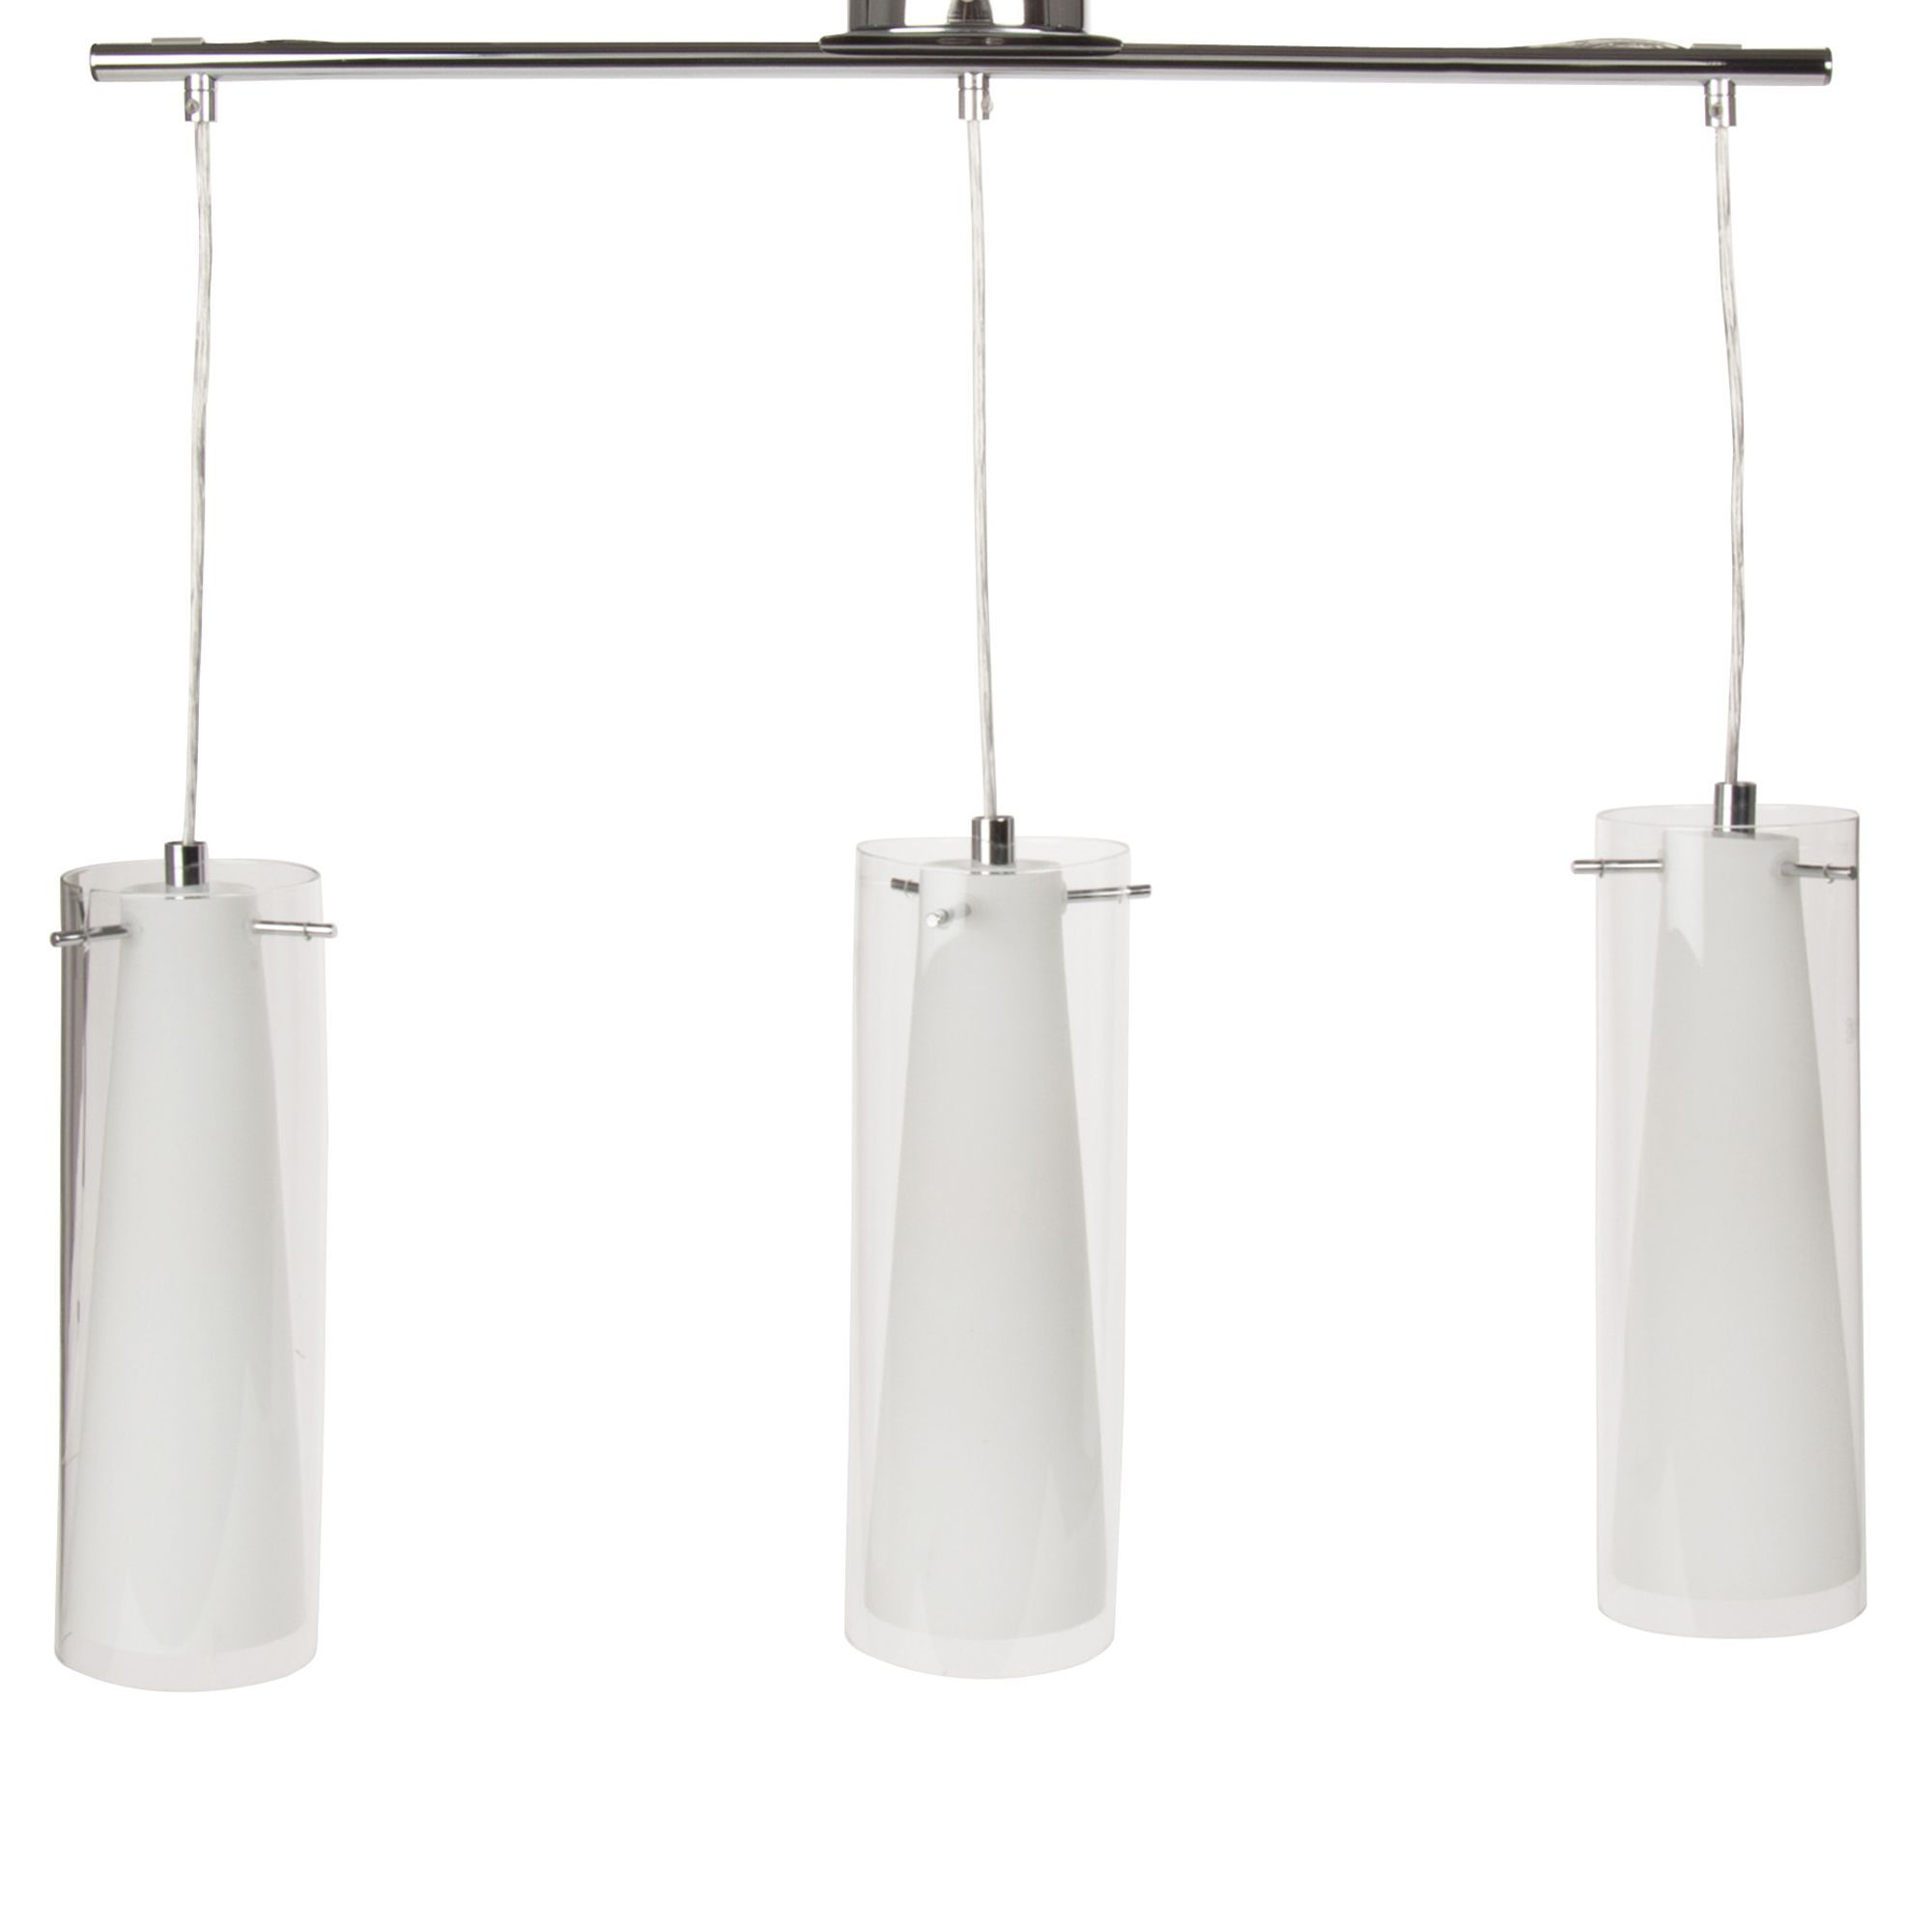 Alinea Luminaire Salon Suspension à 3 Lumières Chrome Verre Transparent Pinto Les